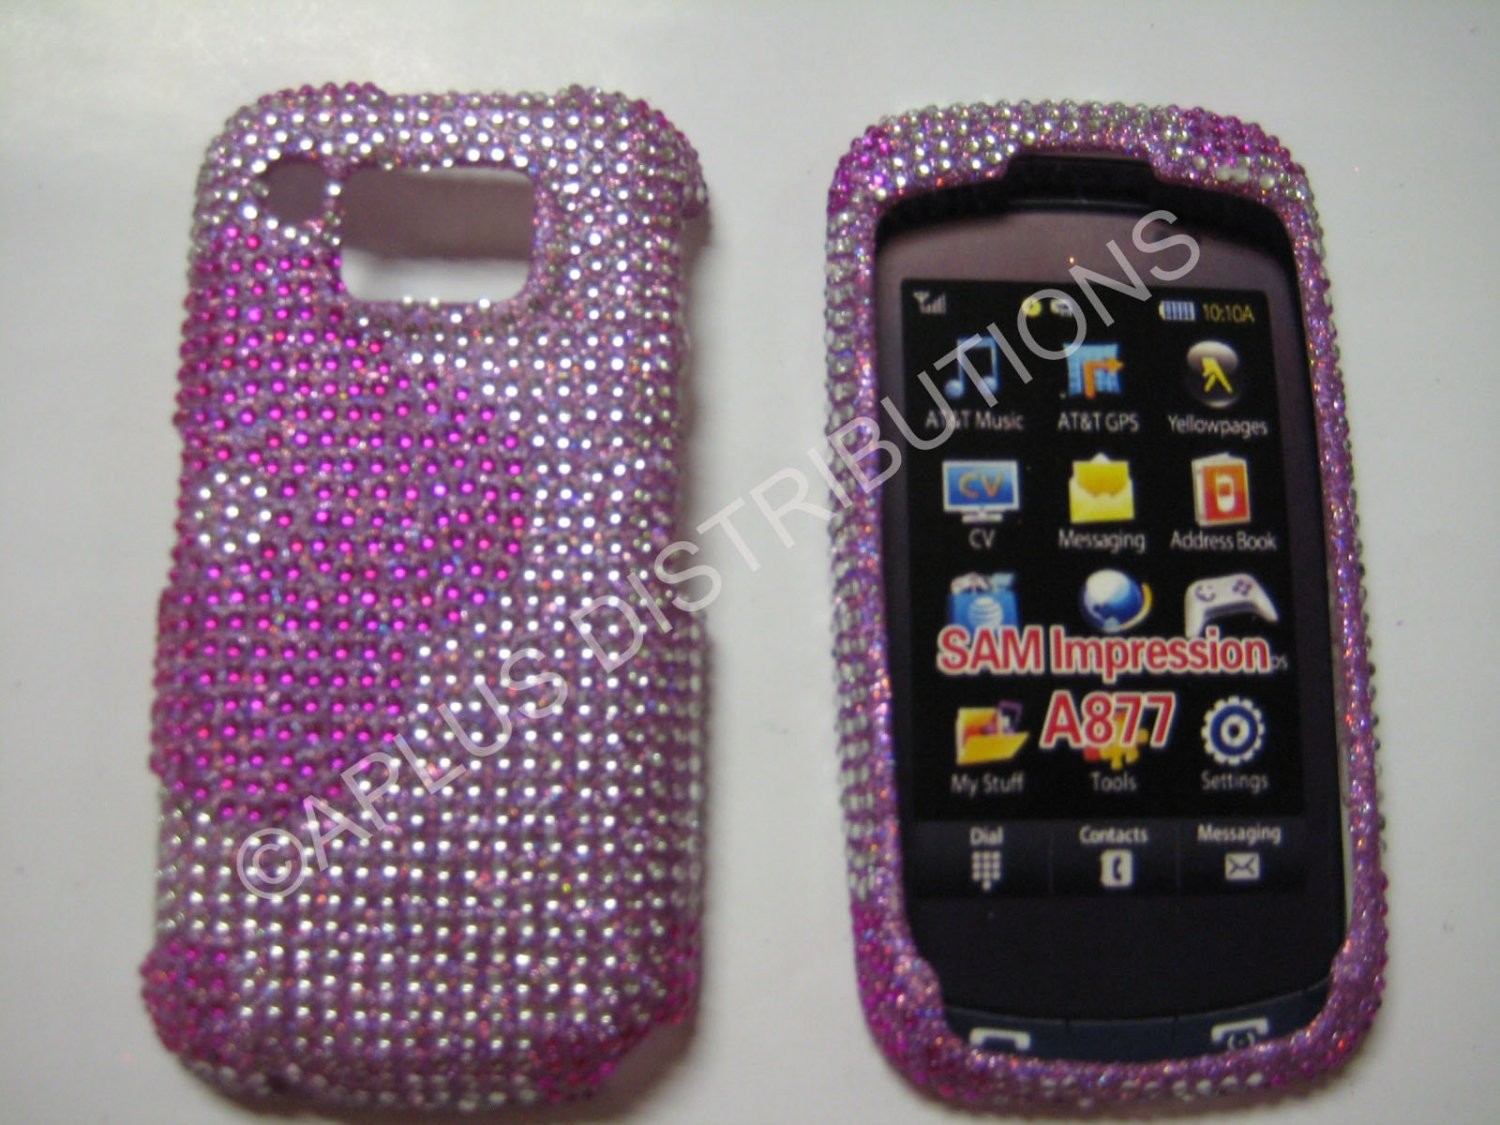 New Hot Pink Half Flower Bling Diamond Case For Samsung Impression A877 - (0002)